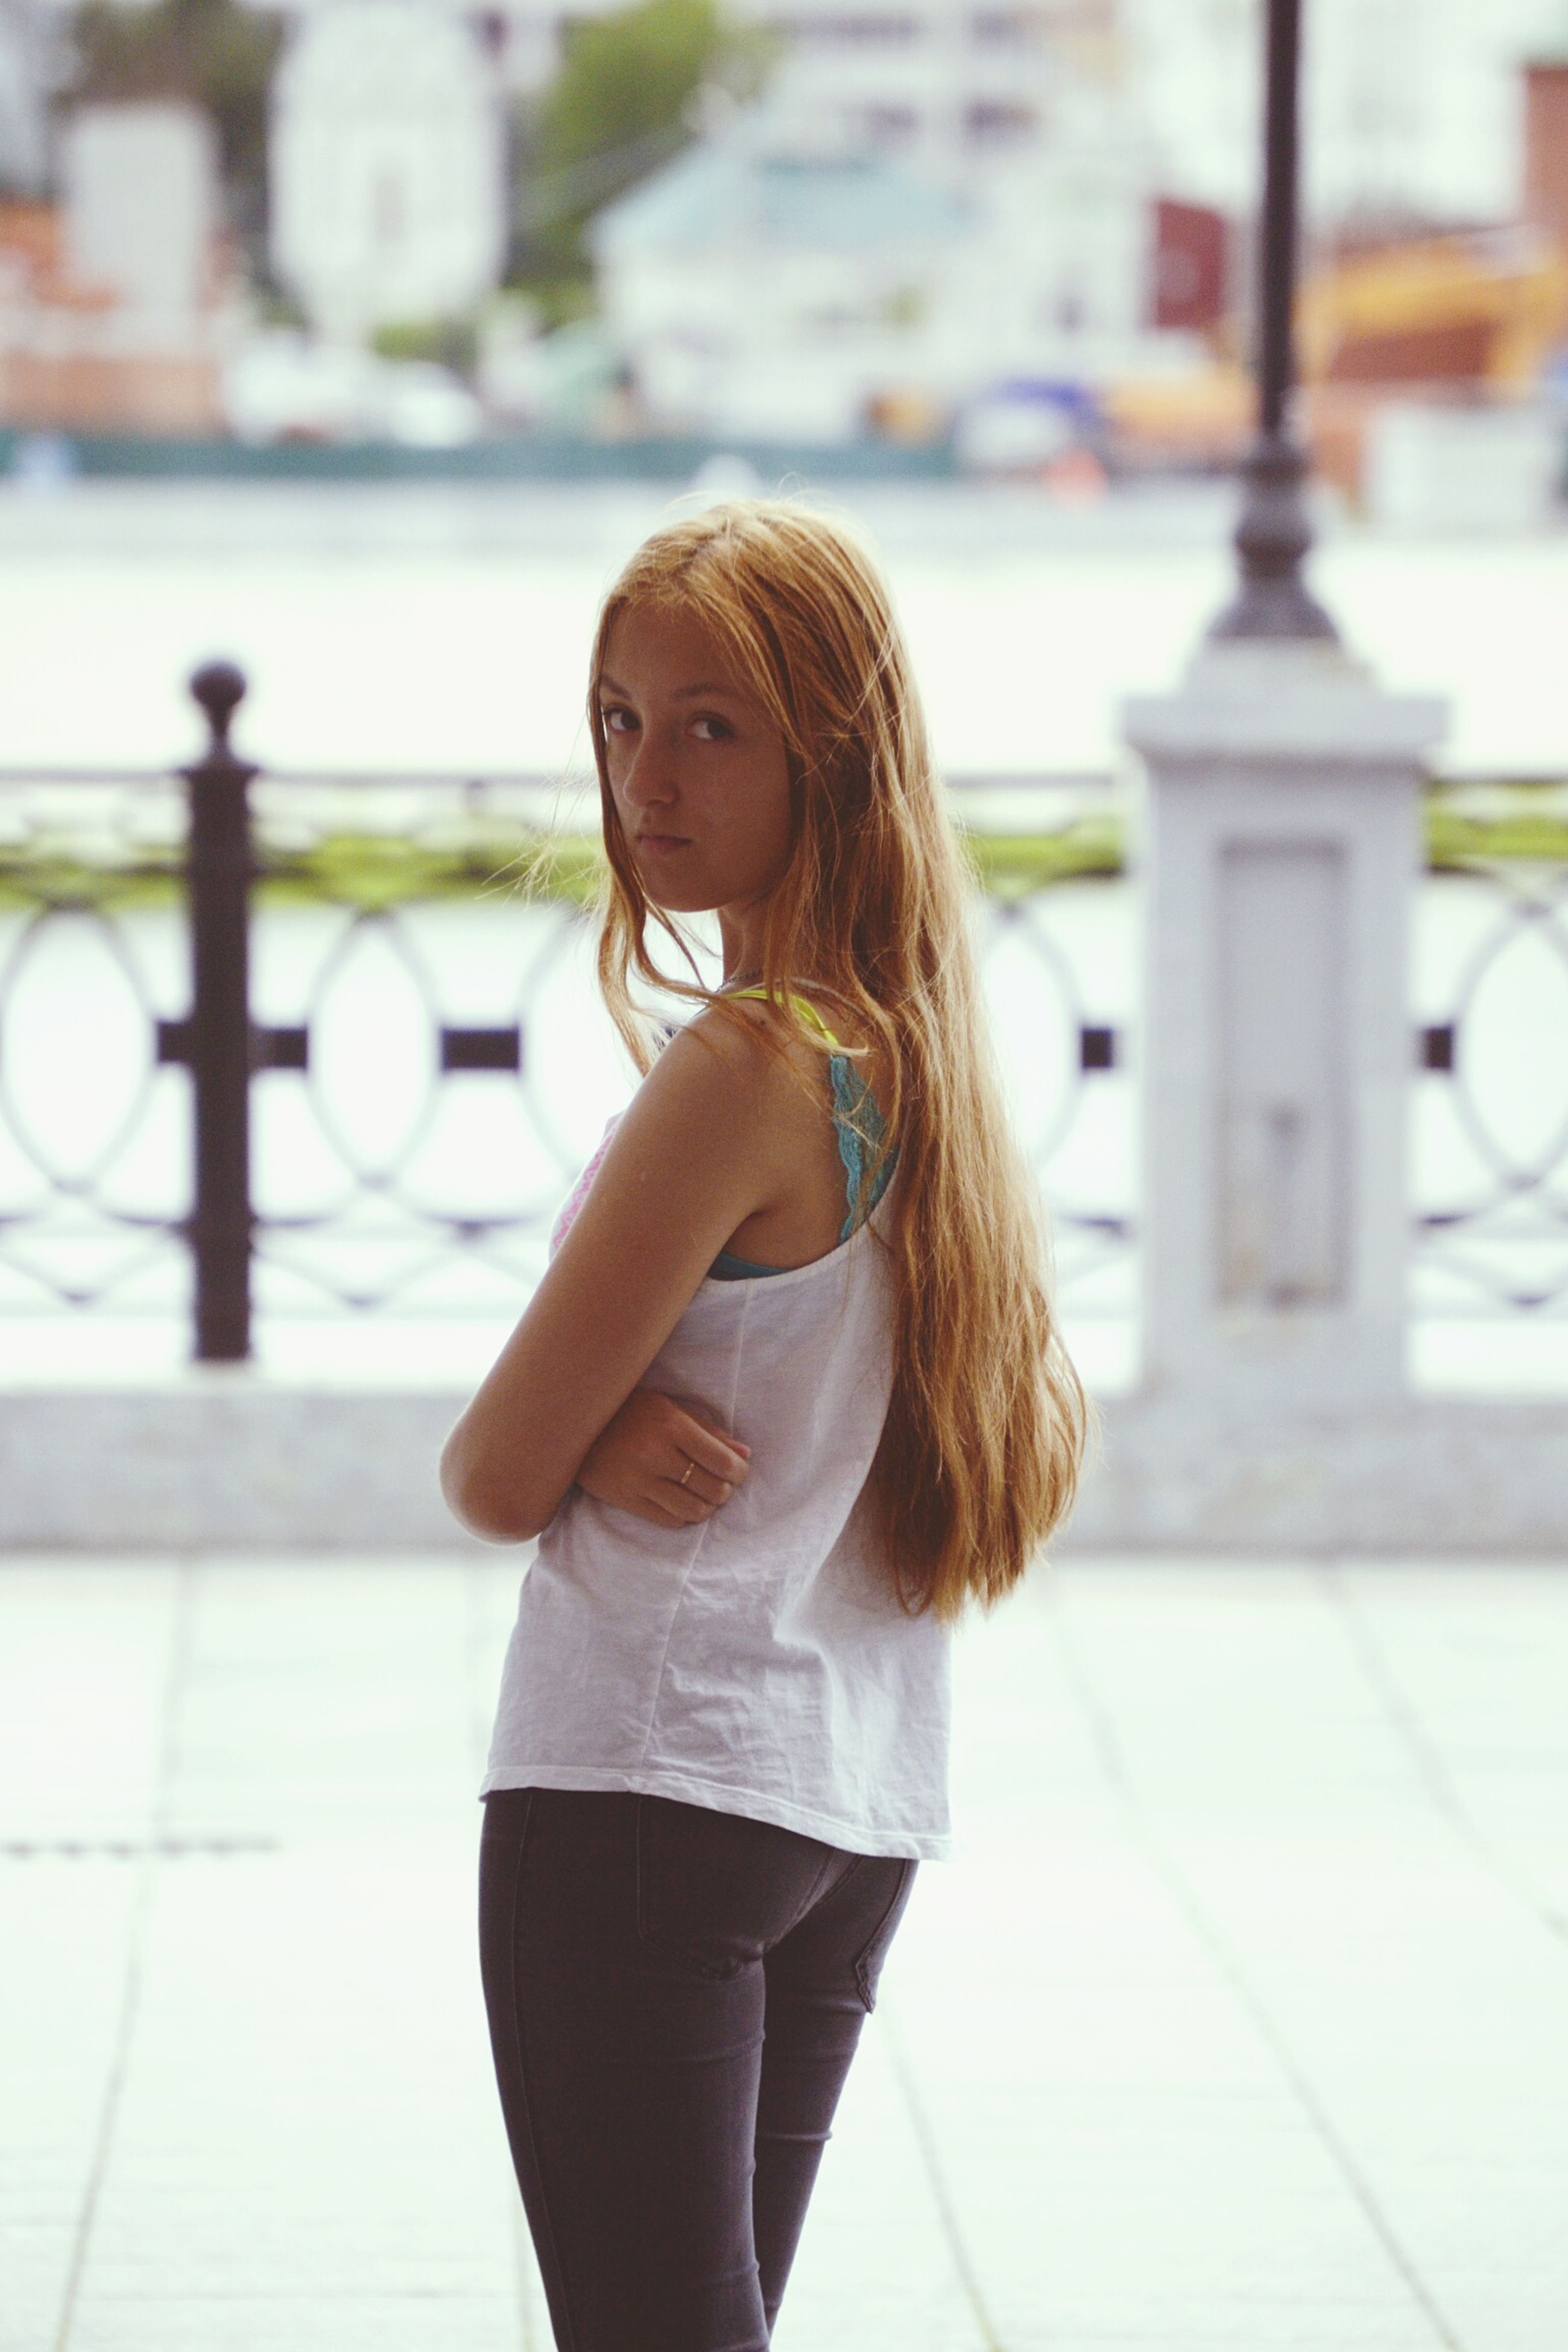 focus on foreground, lifestyles, long hair, young women, young adult, person, leisure activity, standing, casual clothing, brown hair, waist up, three quarter length, side view, blond hair, looking away, front view, medium-length hair